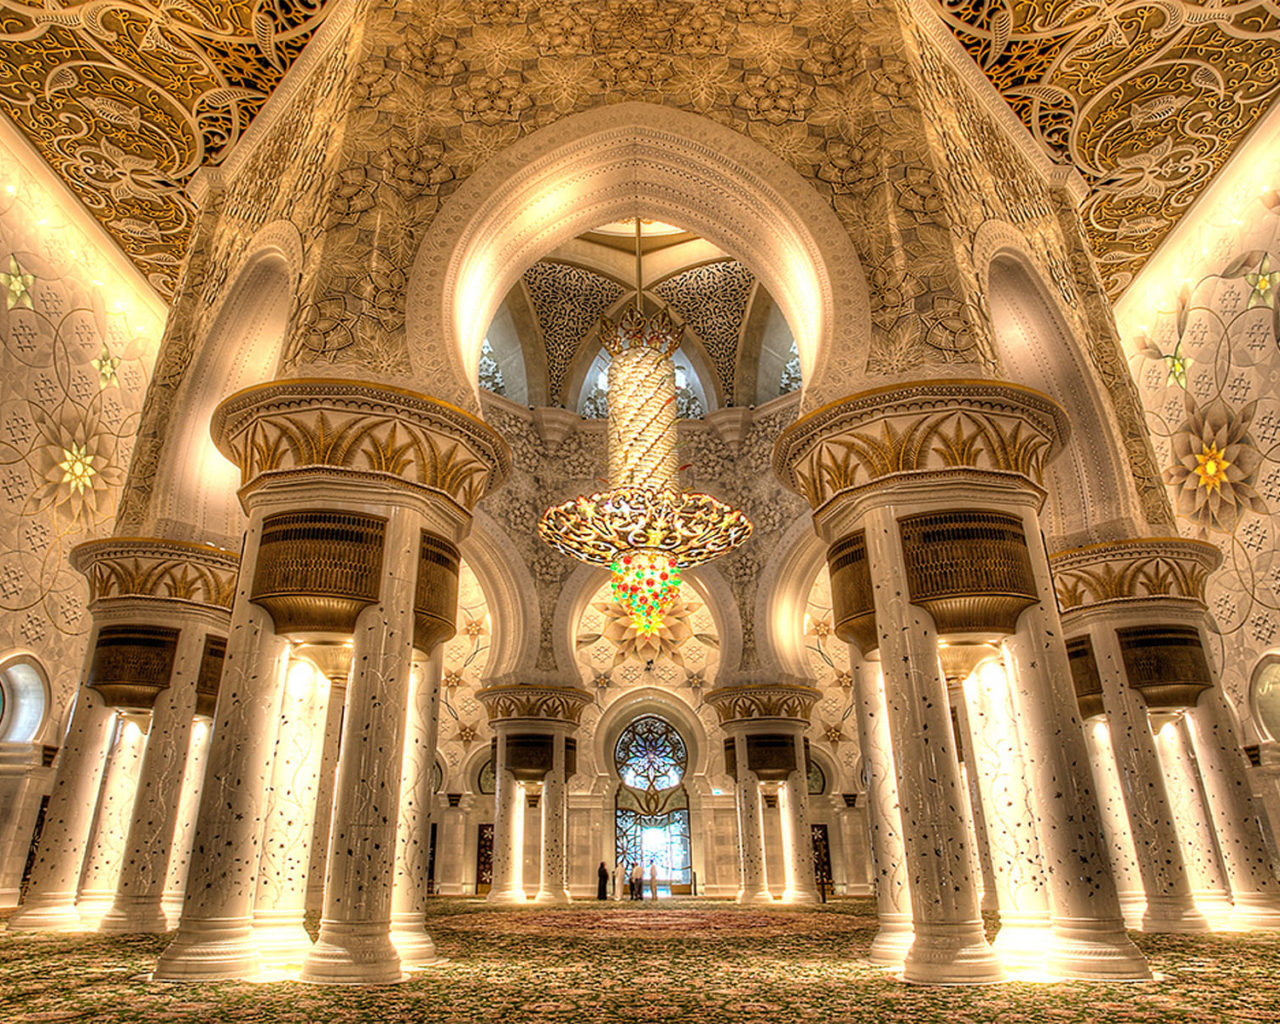 Inside Iphone X Wallpaper Grand Mosque Sheikh Zayed Abu Dhabi Interior Design Main